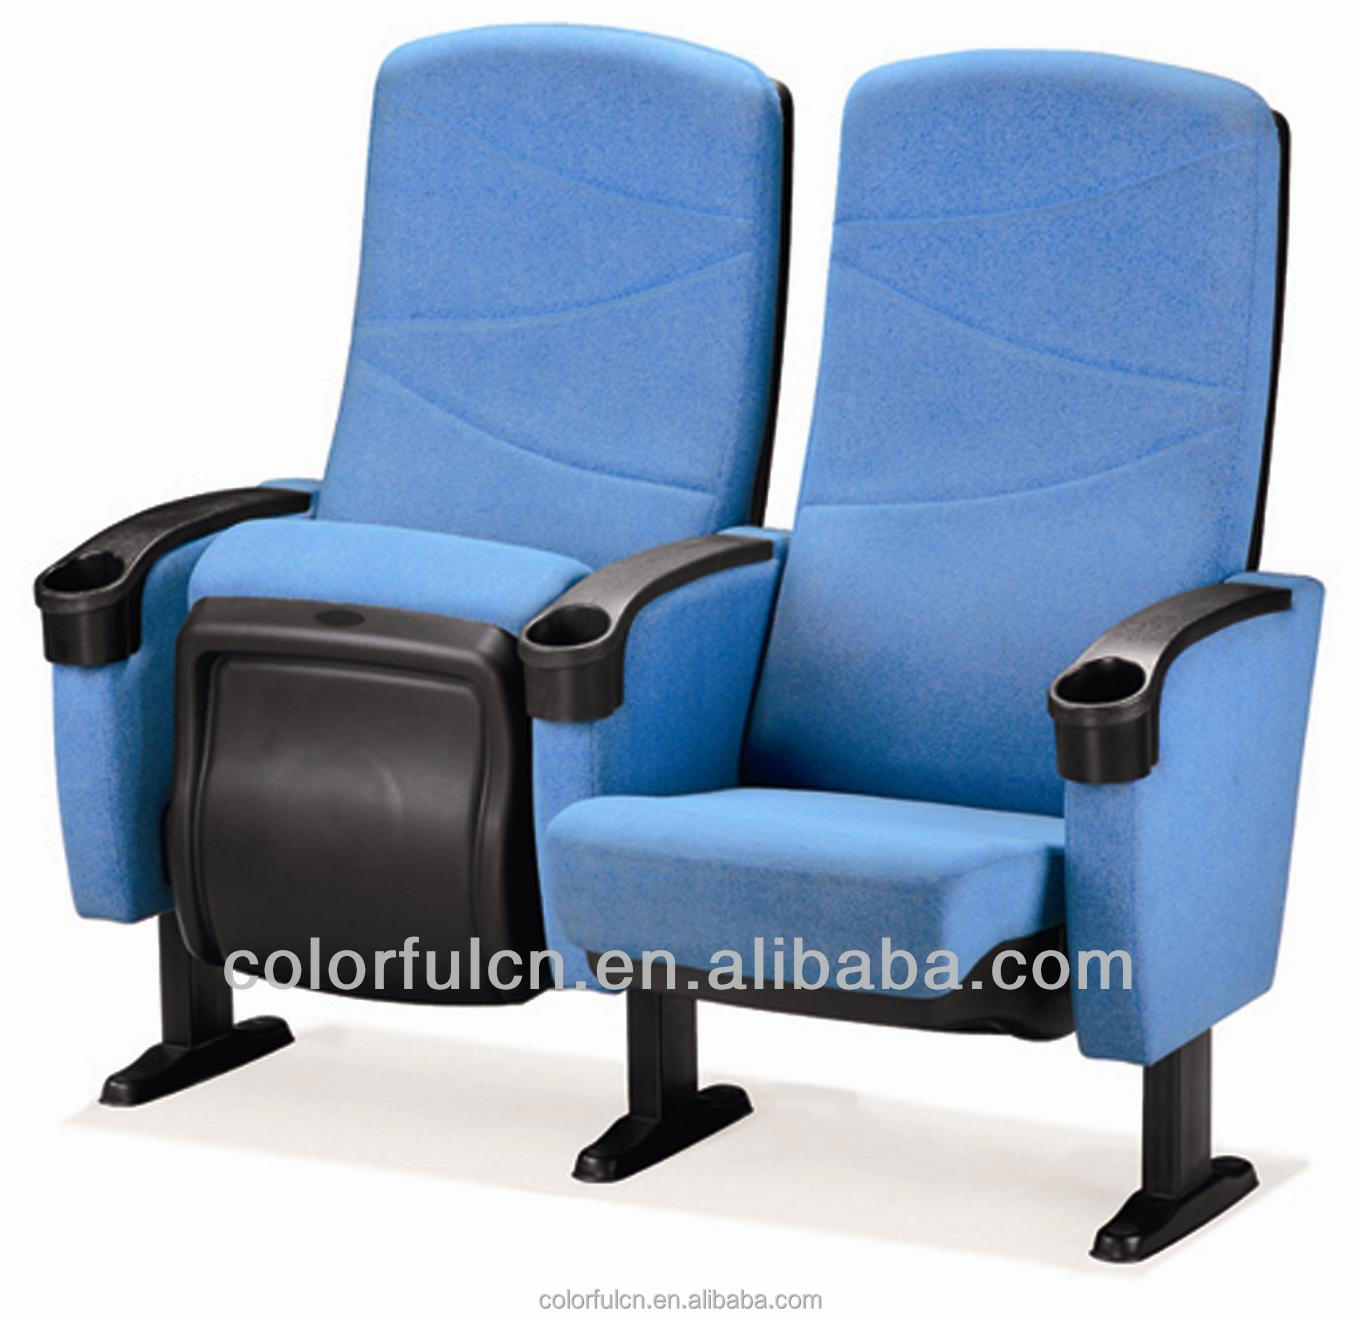 advanced church chairs ikea tullsta chair covers home theater 5d model cinema ya 240 buy